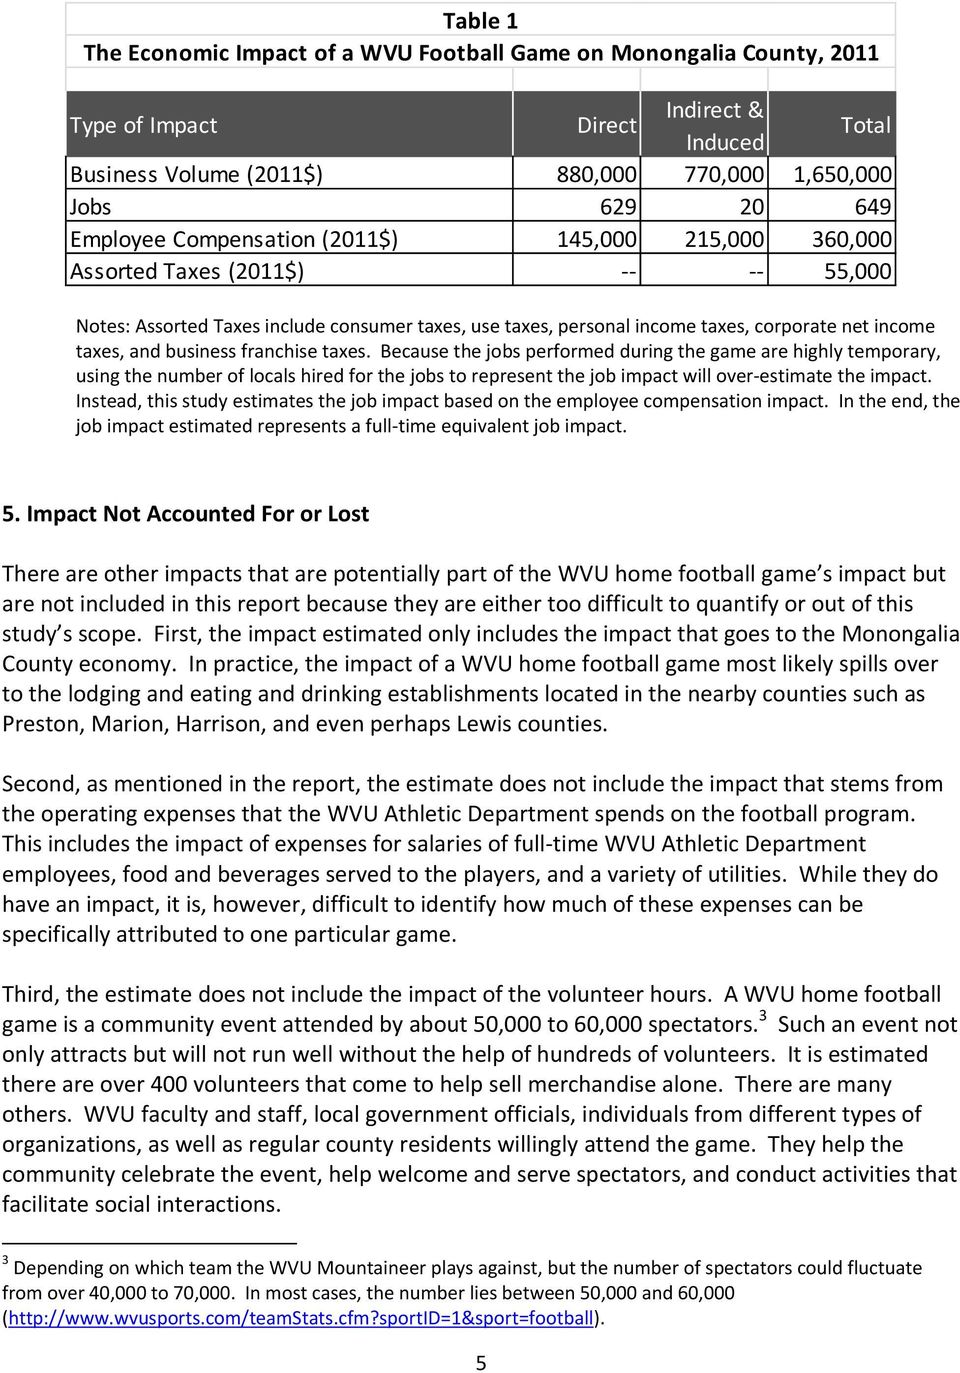 franchise taxes. Because the jobs performed during the game are highly temporary, using the number of locals hired for the jobs to represent the job impact will over estimate the impact.